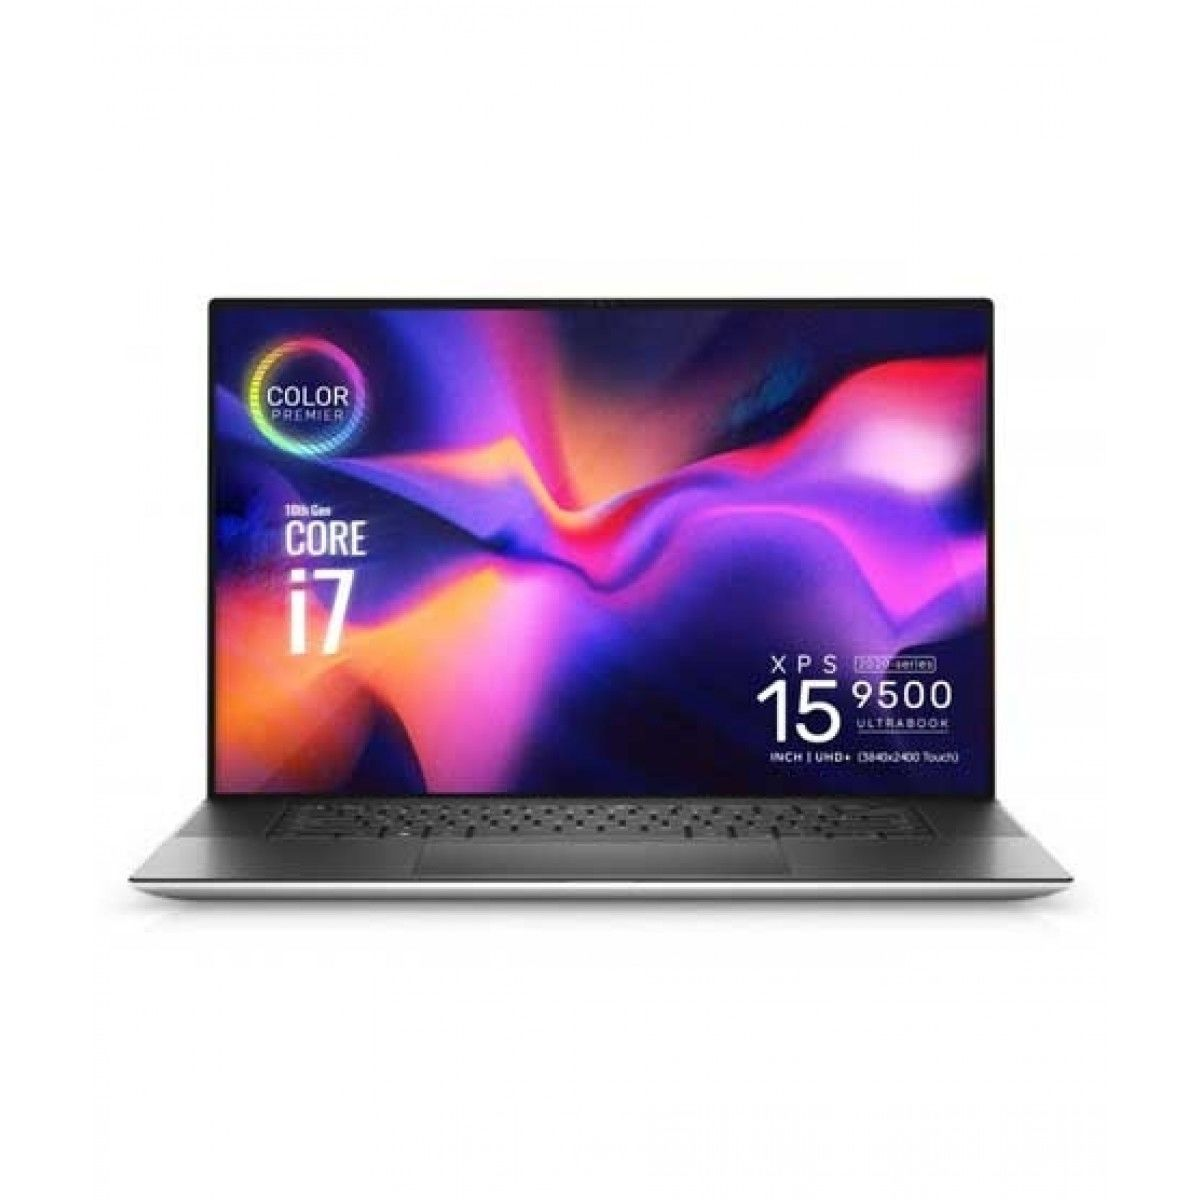 Dell XPS 15 Core i7 10th Gen 16GB 512GB SSD Geforce GTX 1650Ti Laptop (9500) - Without Warranty